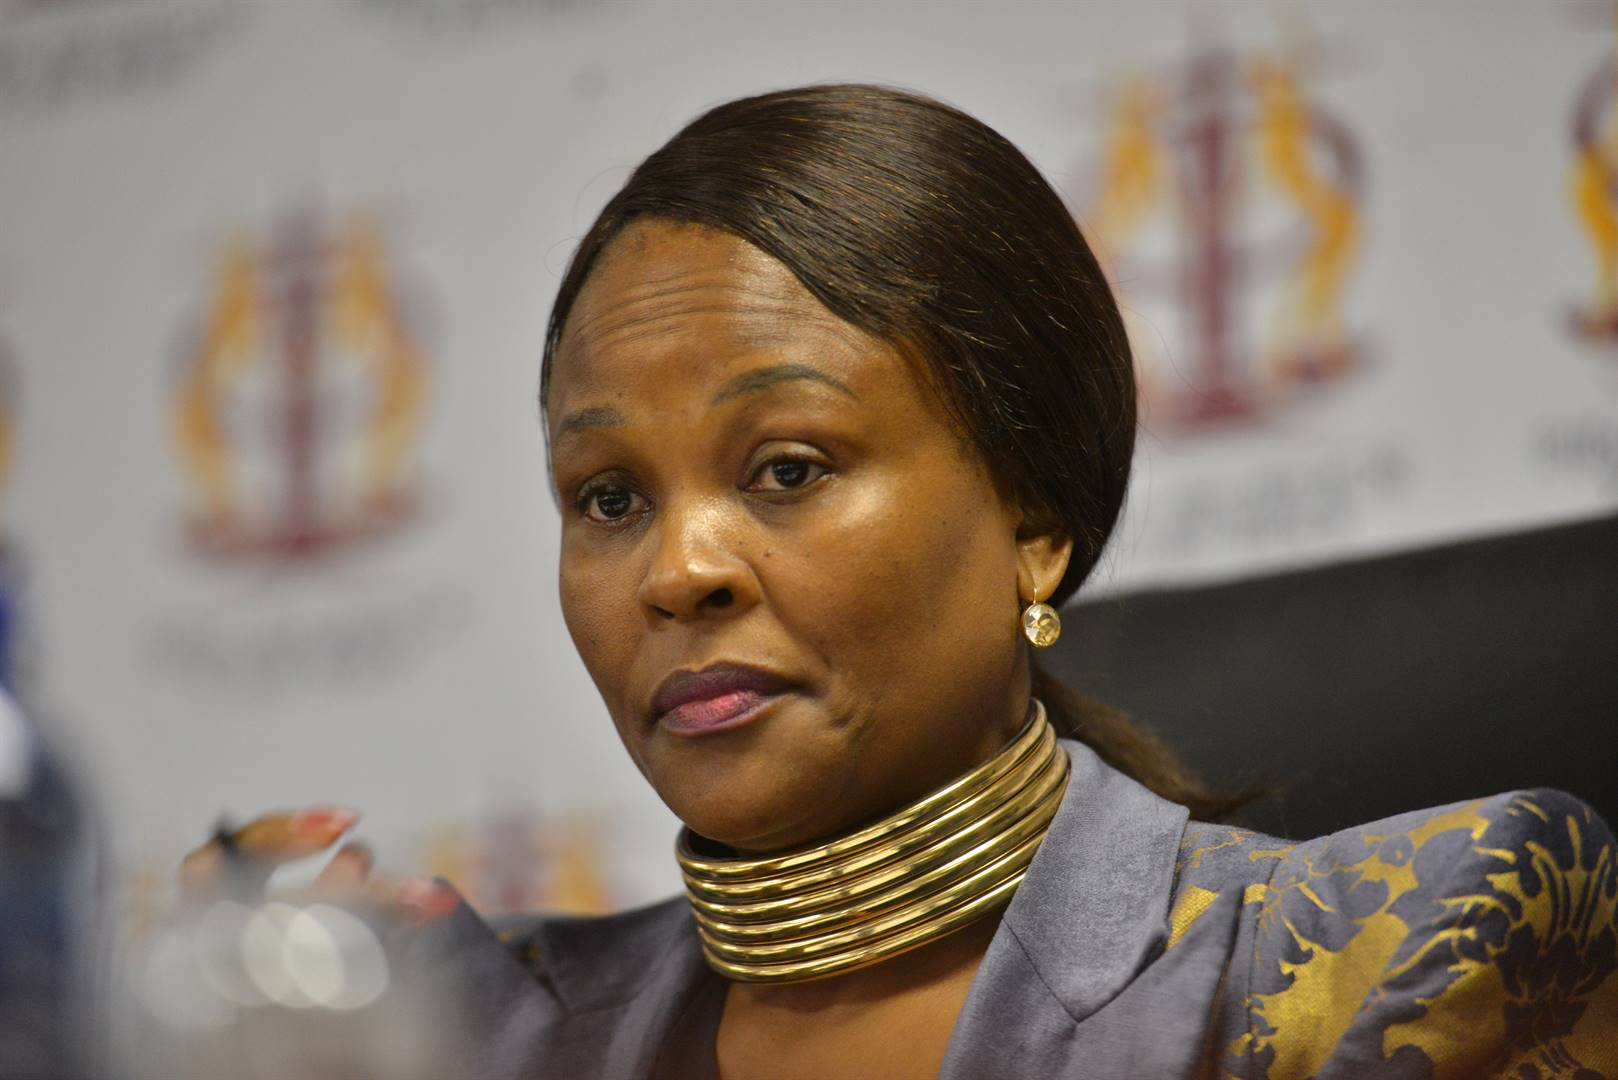 PP apologises to judge she attacked over Gordhan interdict, as she defends 'Rogue Unit' report - News24